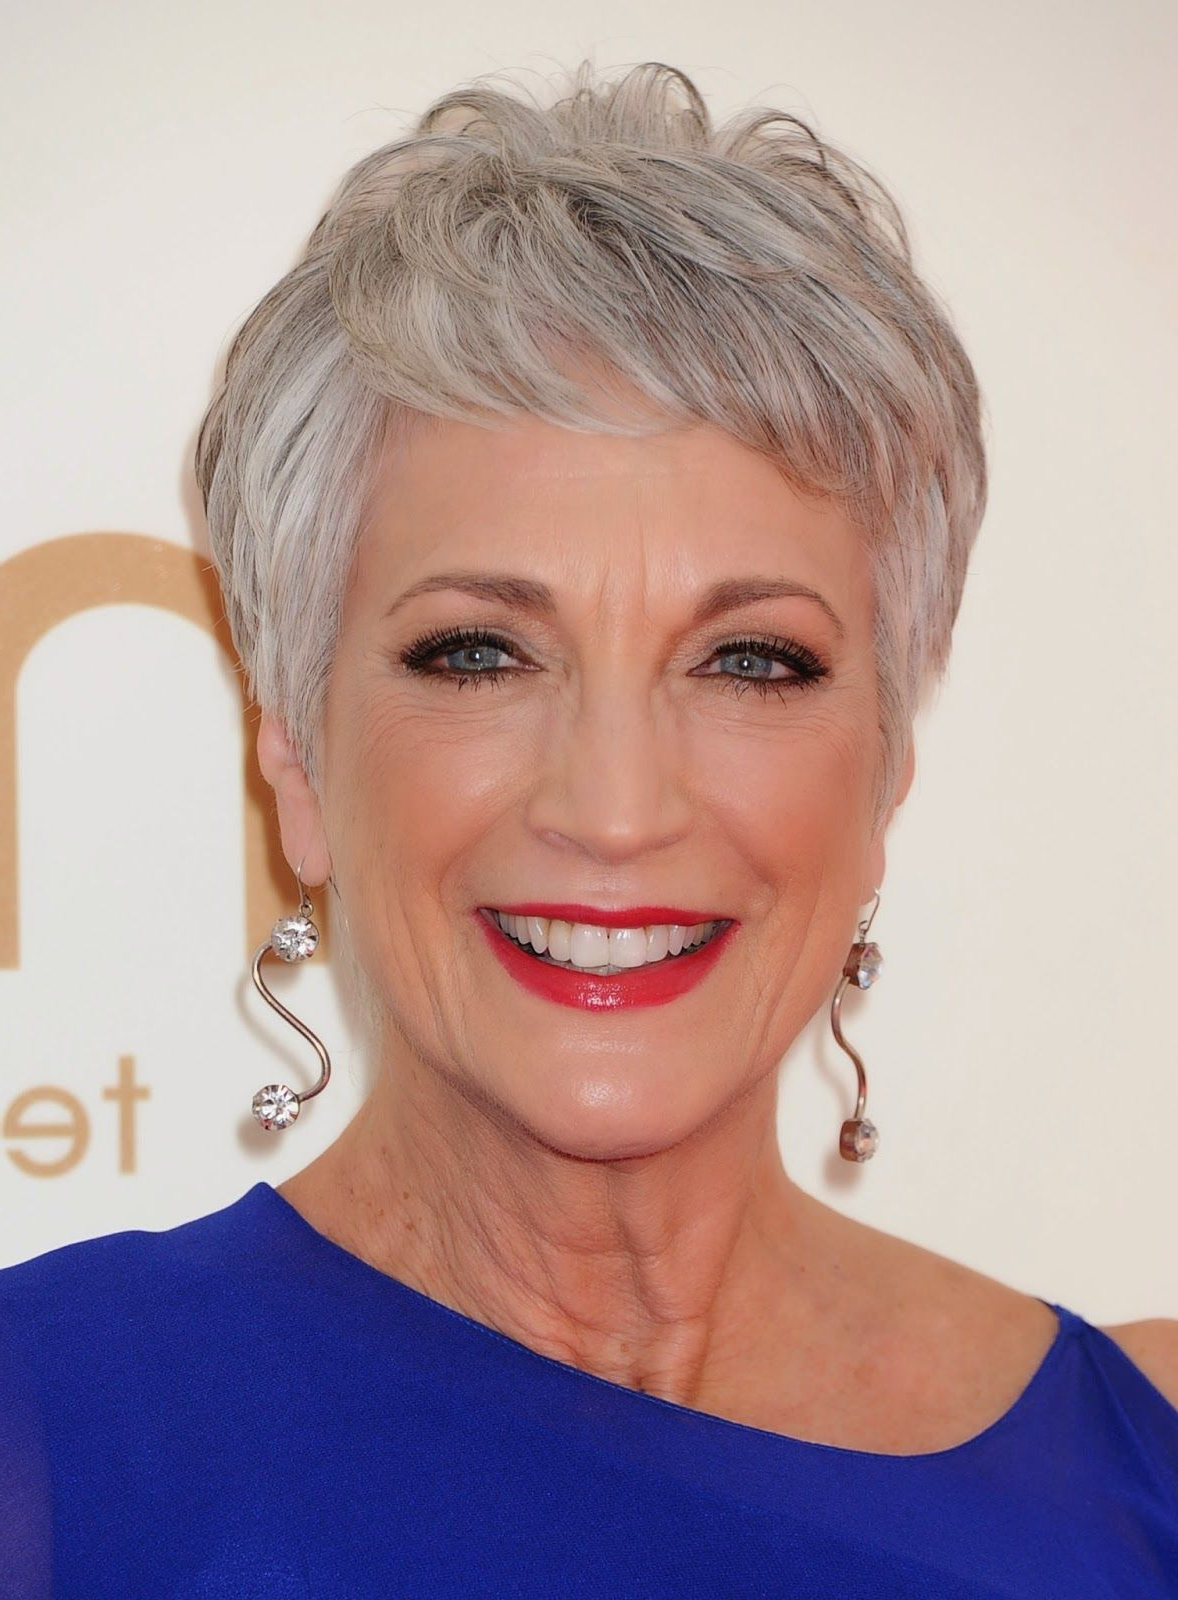 21 Short Haircuts For Women Over 50 | Hair | Pinterest | Short Hair Pertaining To Short Haircuts For Older Women (View 7 of 25)